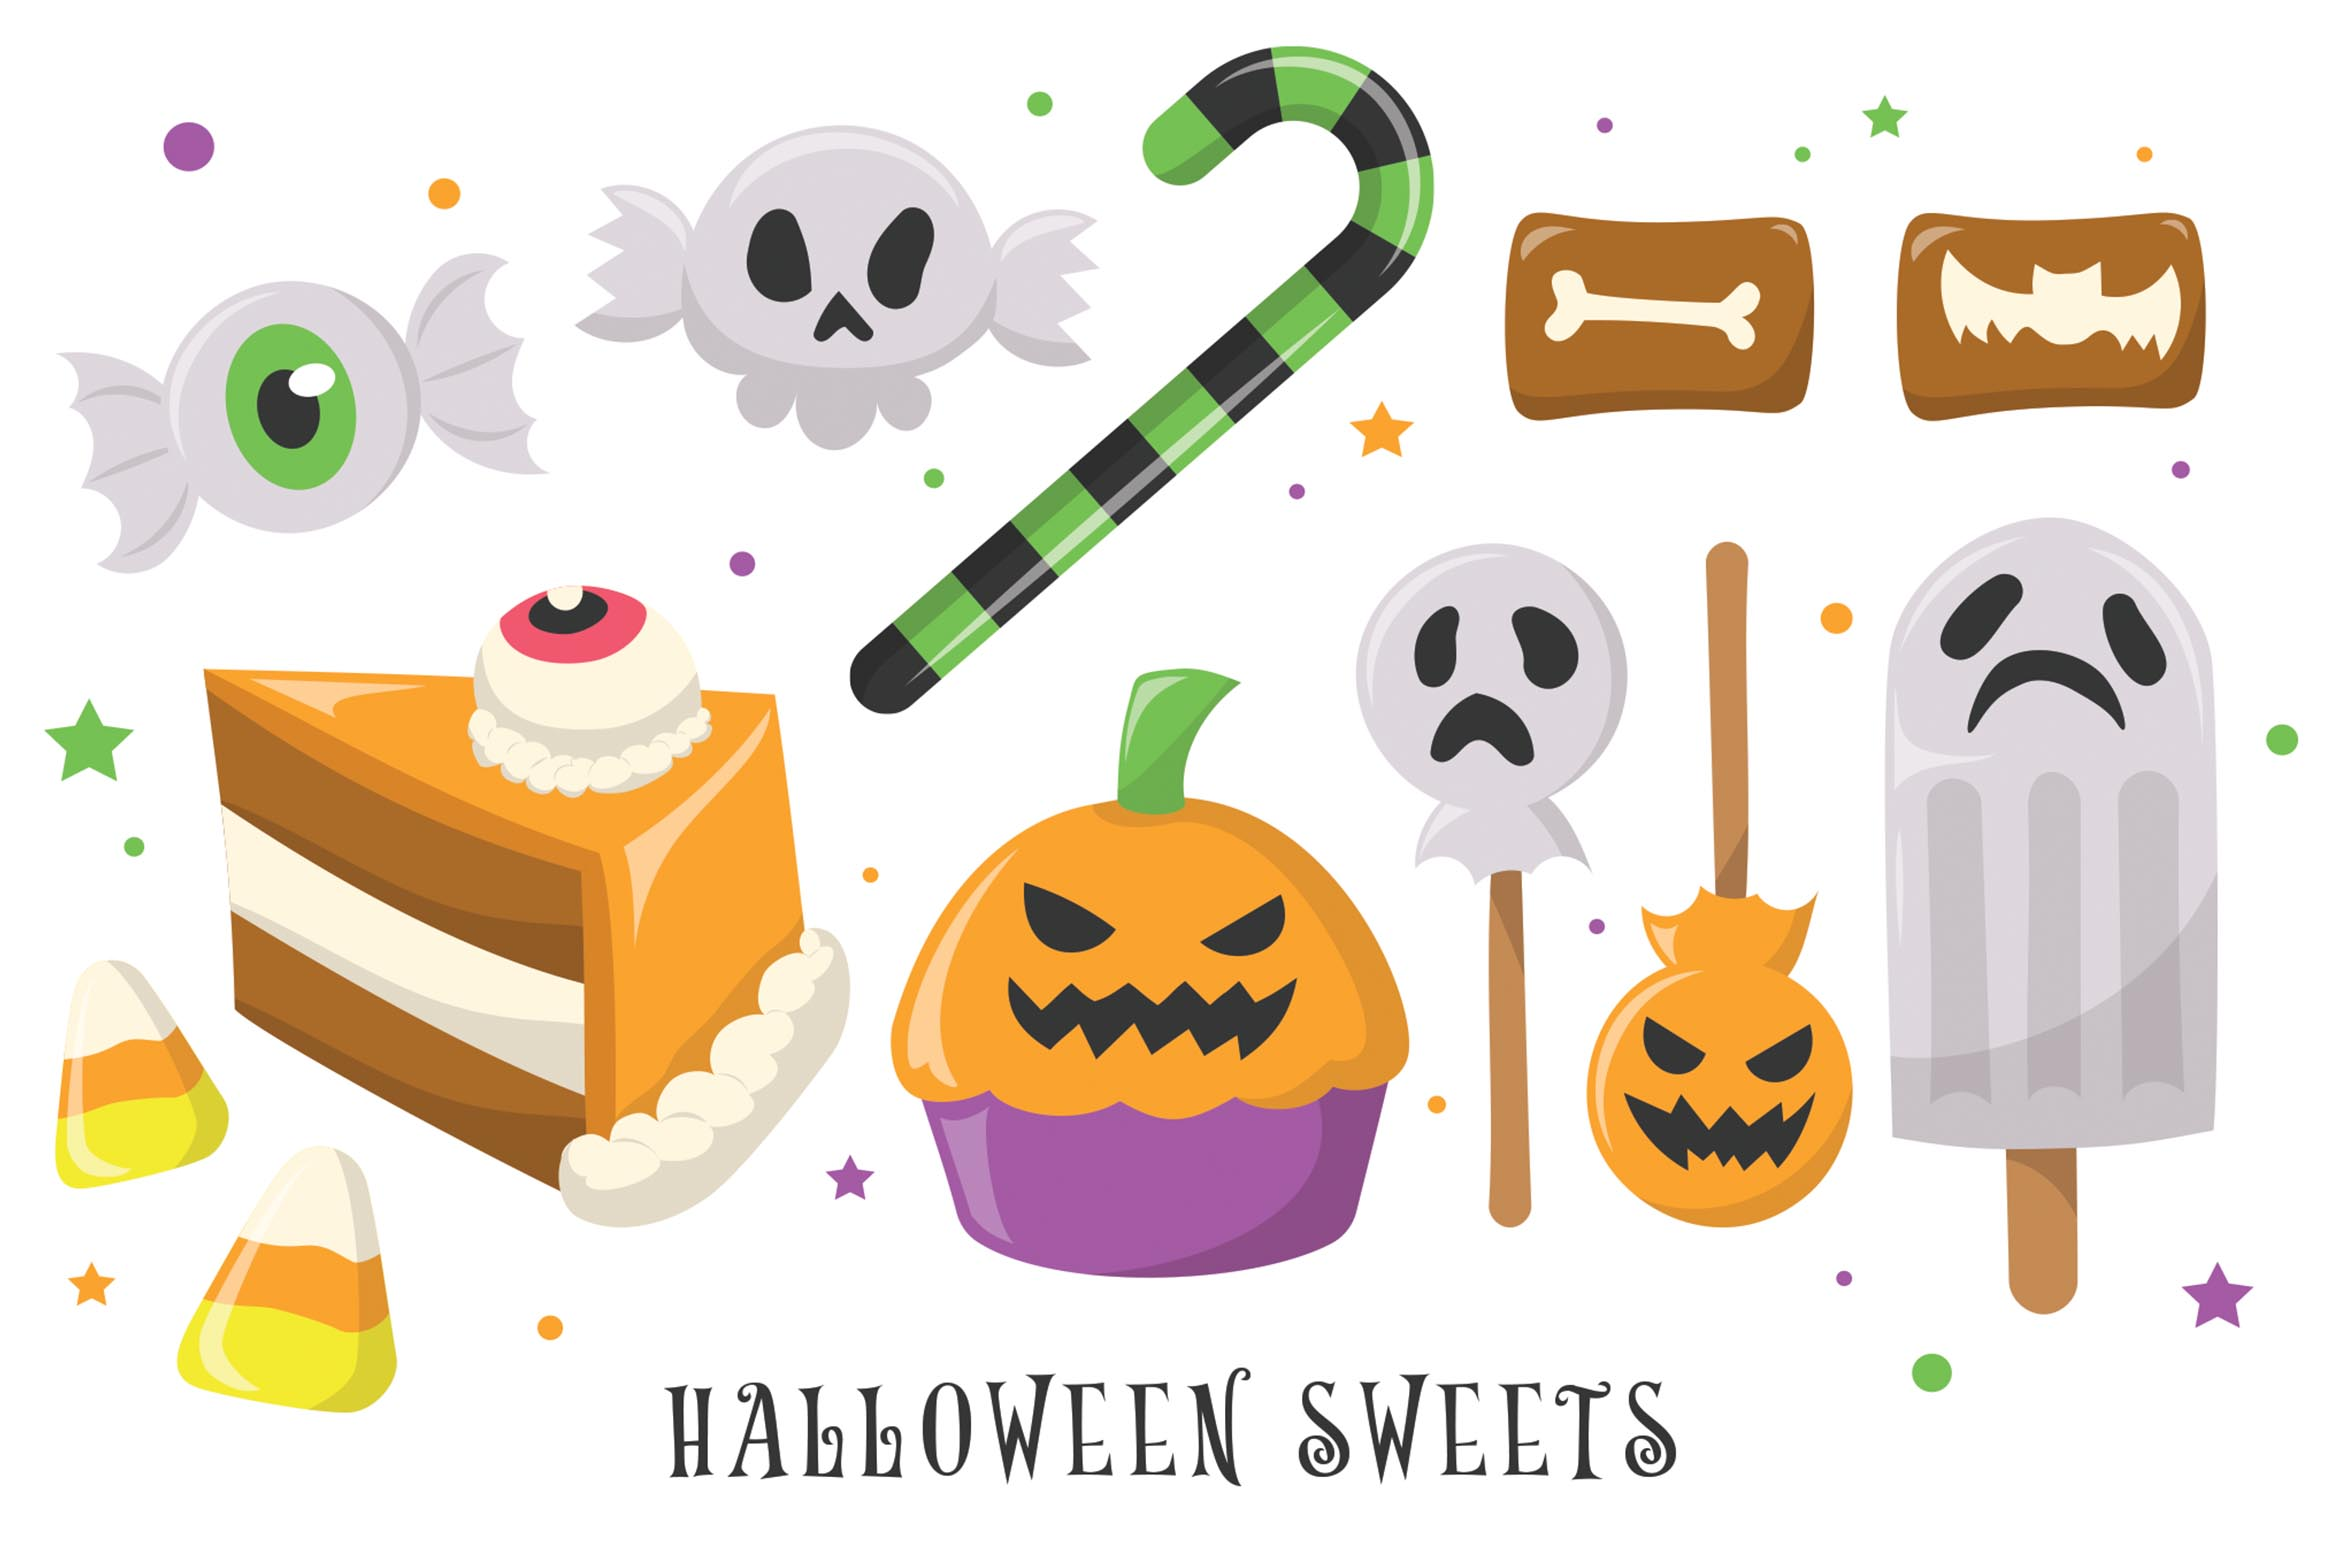 Halloween Candy Sweets Vector Clipart Illustrations